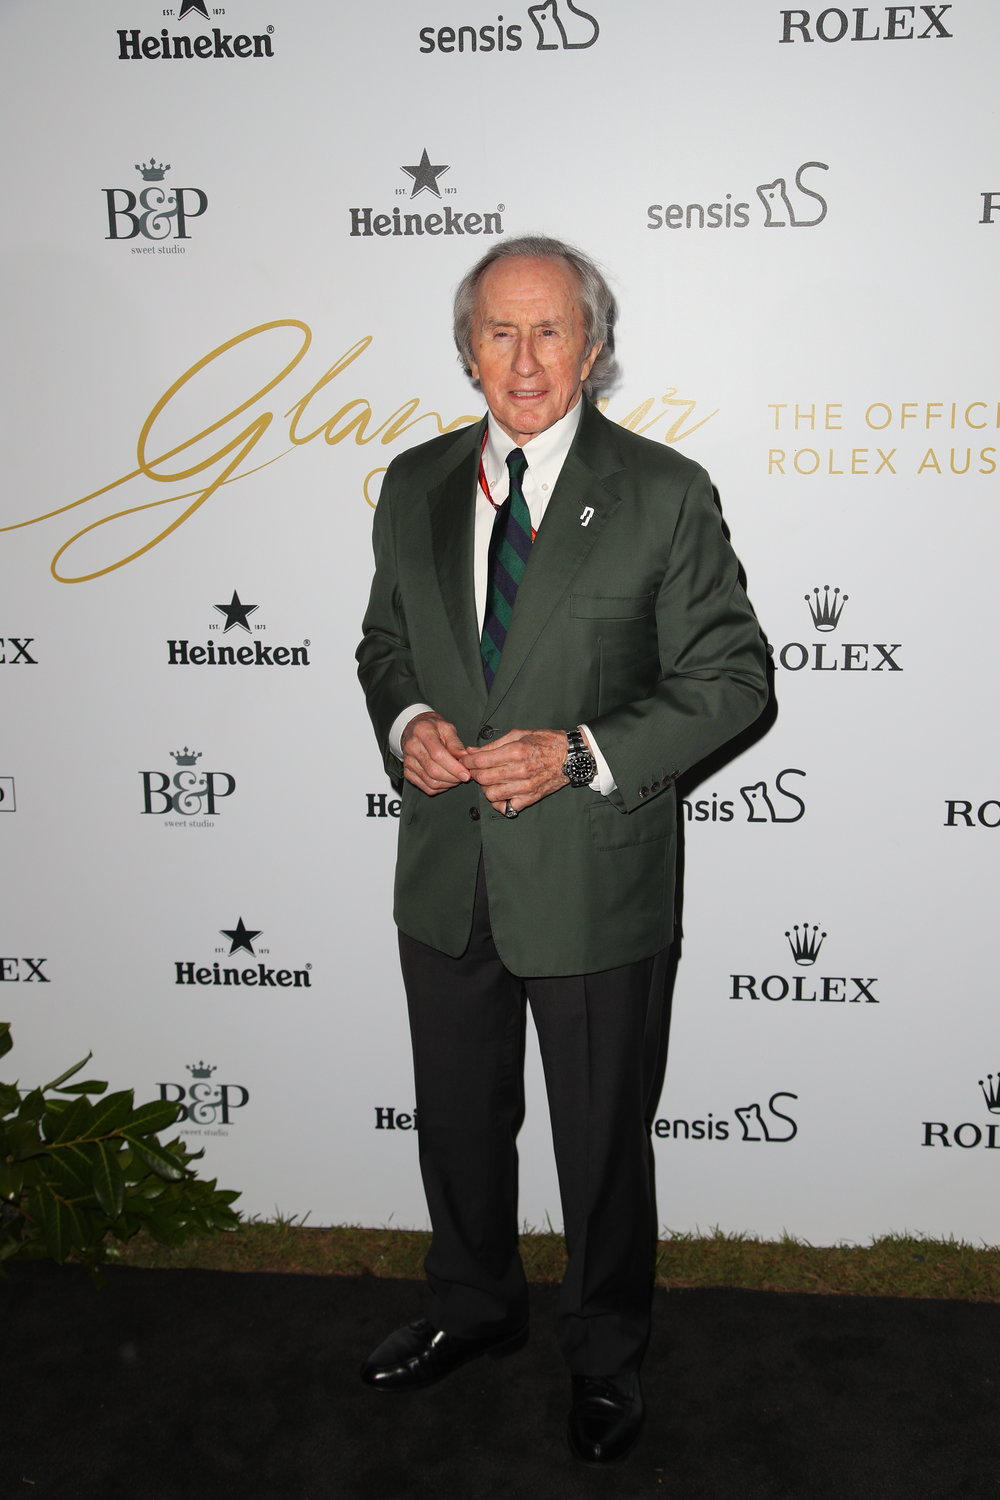 Sir Jackie Stewart on the media wall with Burch & Purchese branding at the 'Glamour on the Grid' launch party for the 2017 Australian Grand Prix at Albert Park.